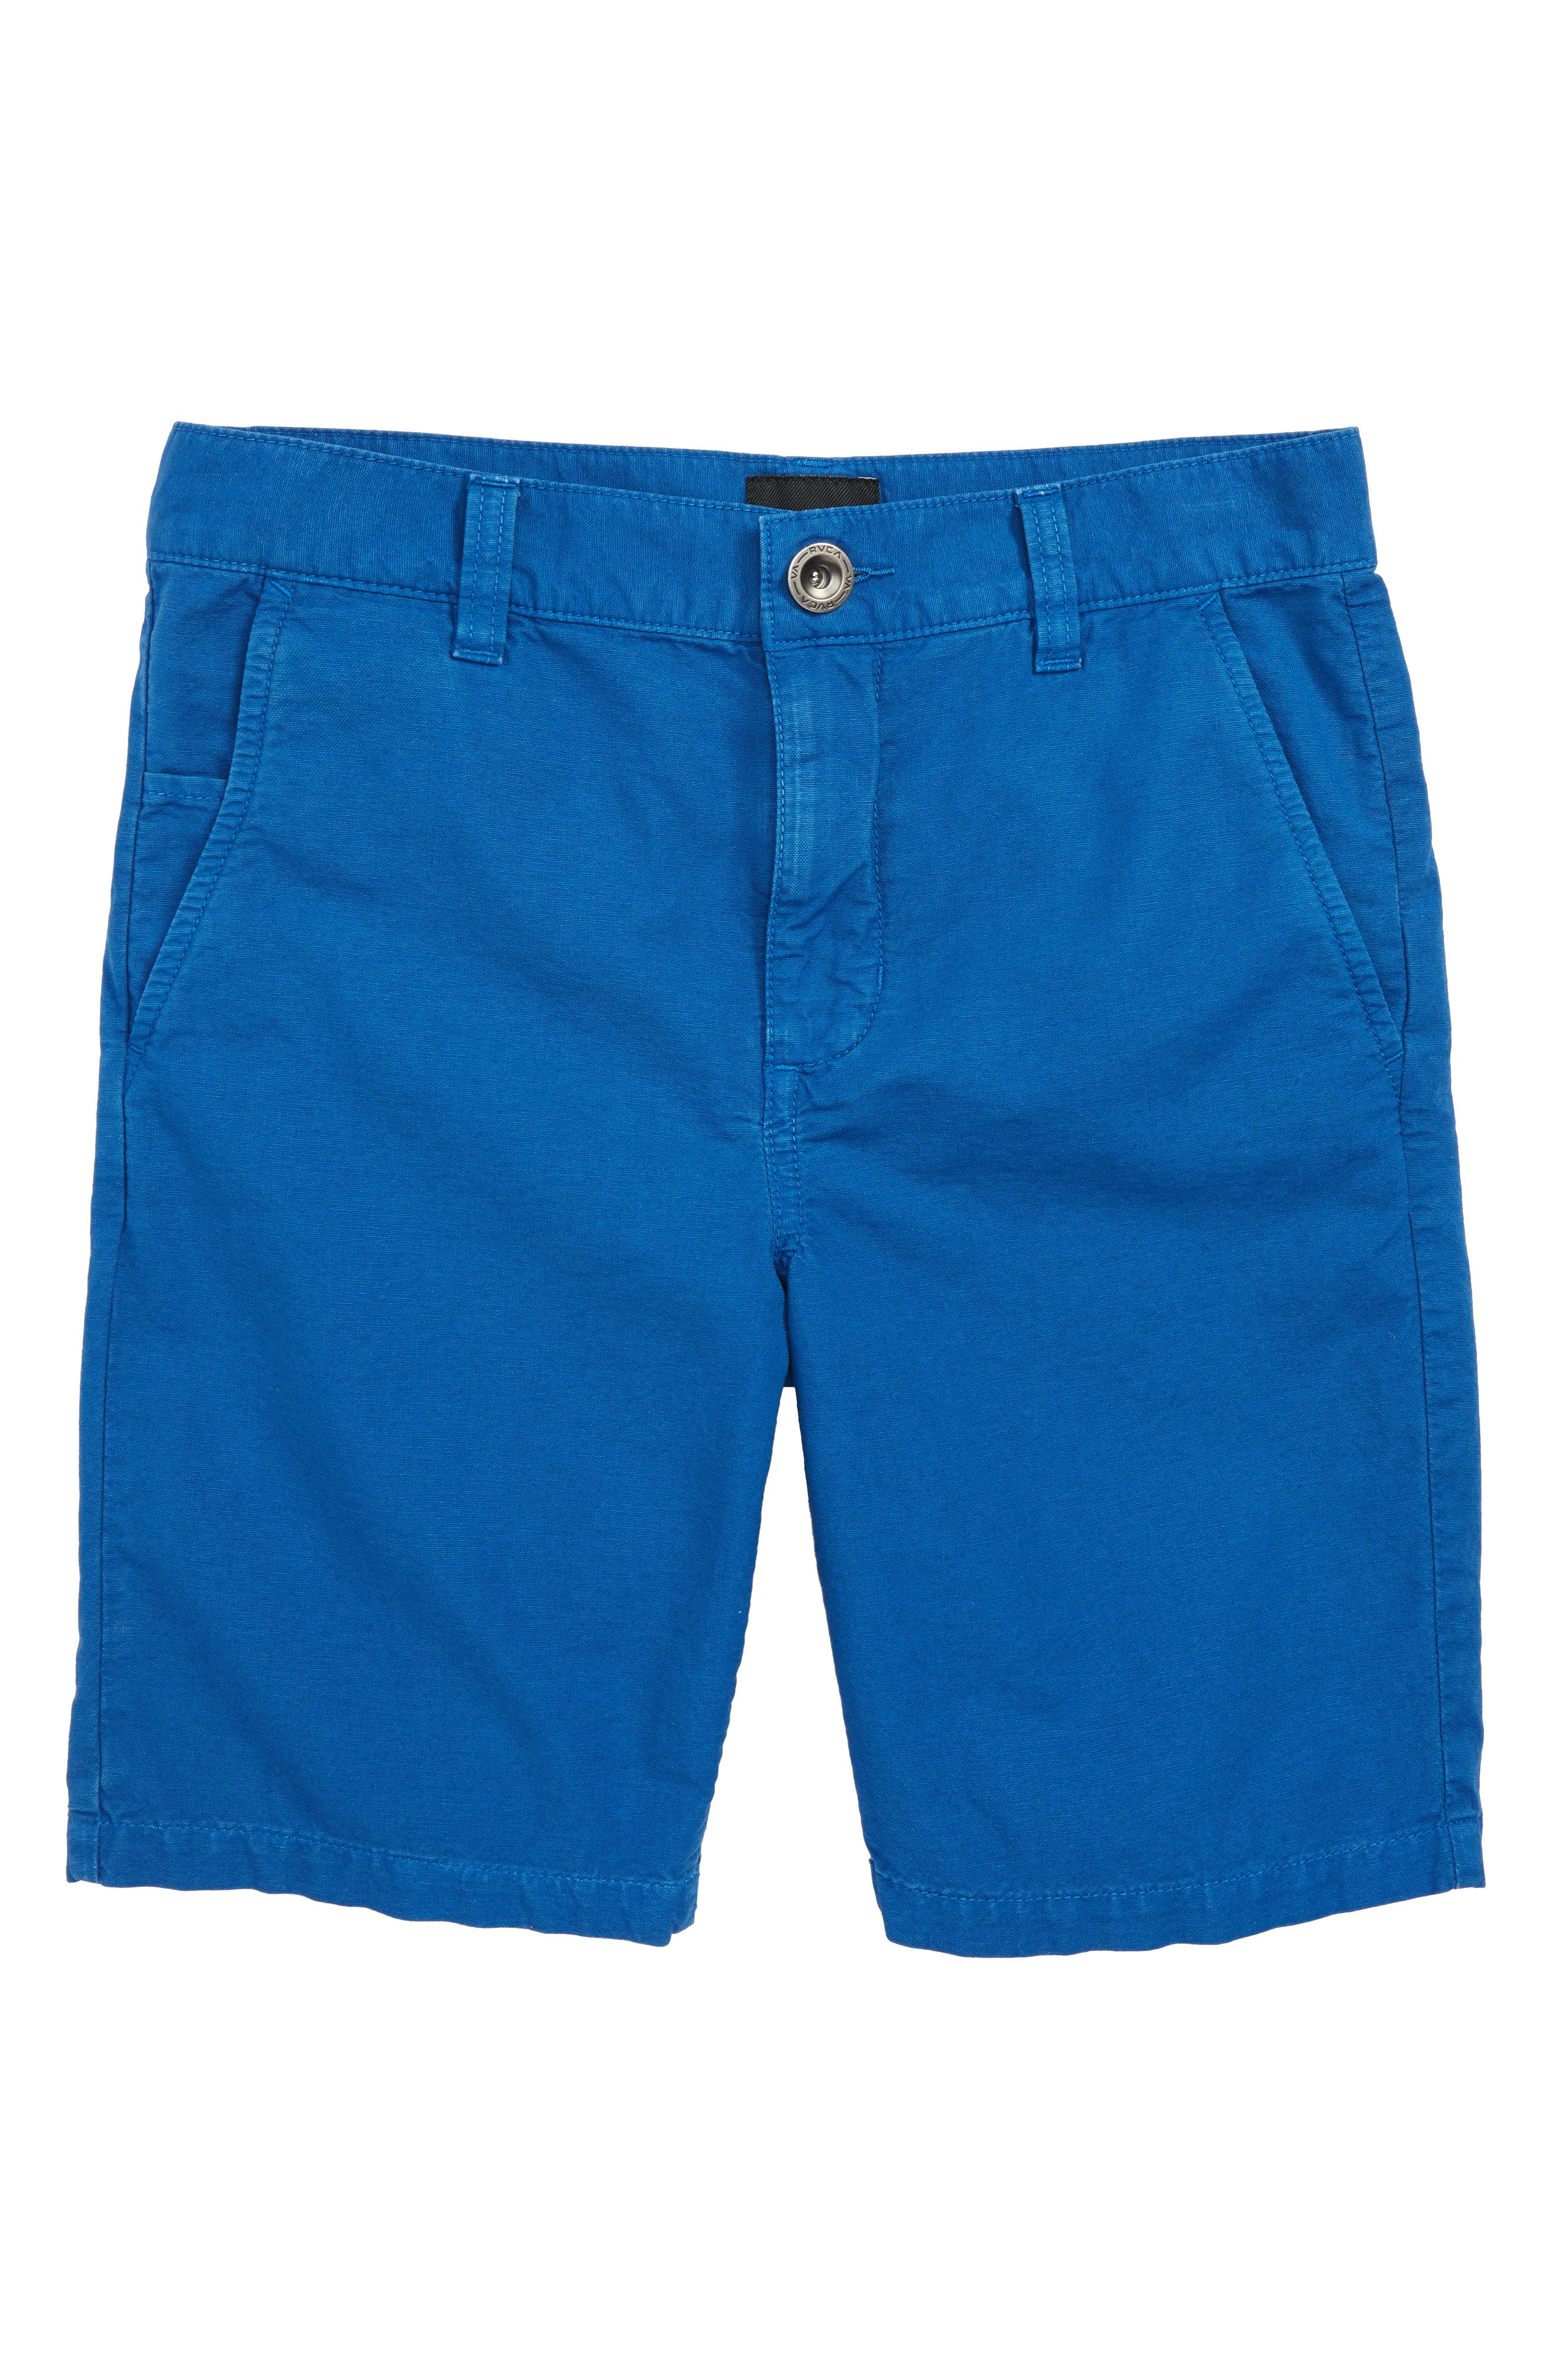 Butter Ball Shorts,                         Main,                         color, 431